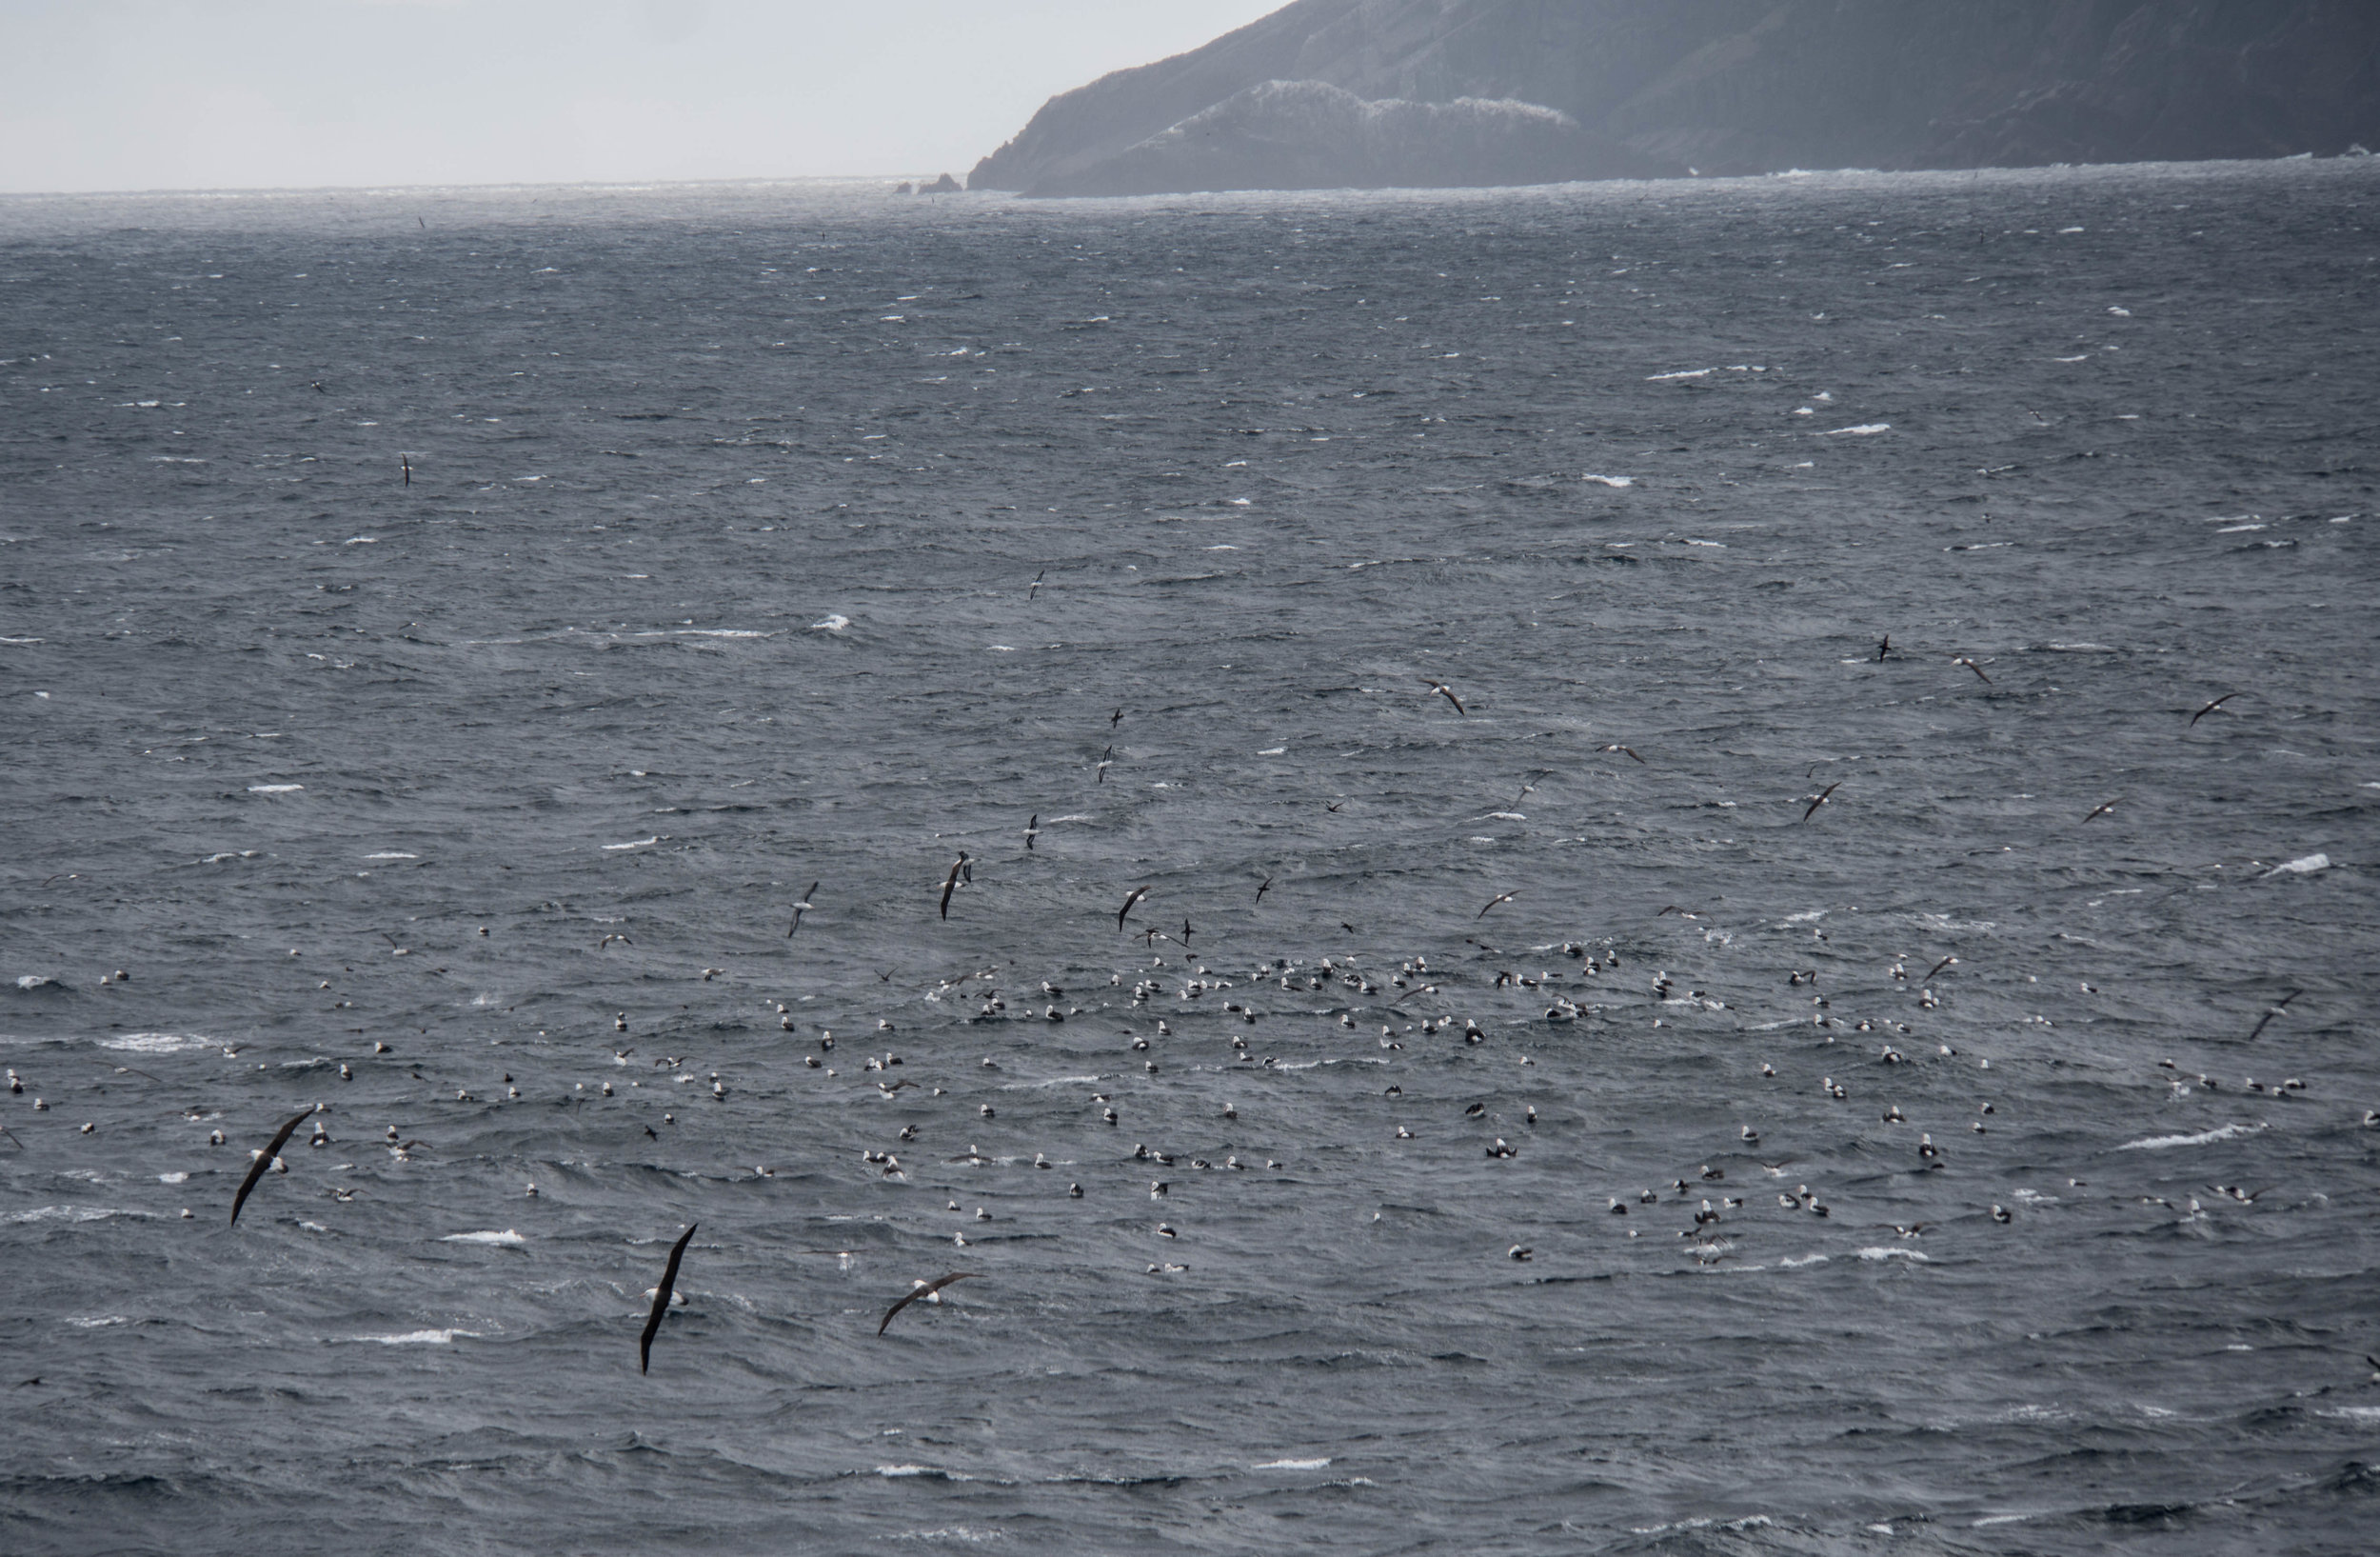 A rookery of albatrosses. Cape Horn, Chile.